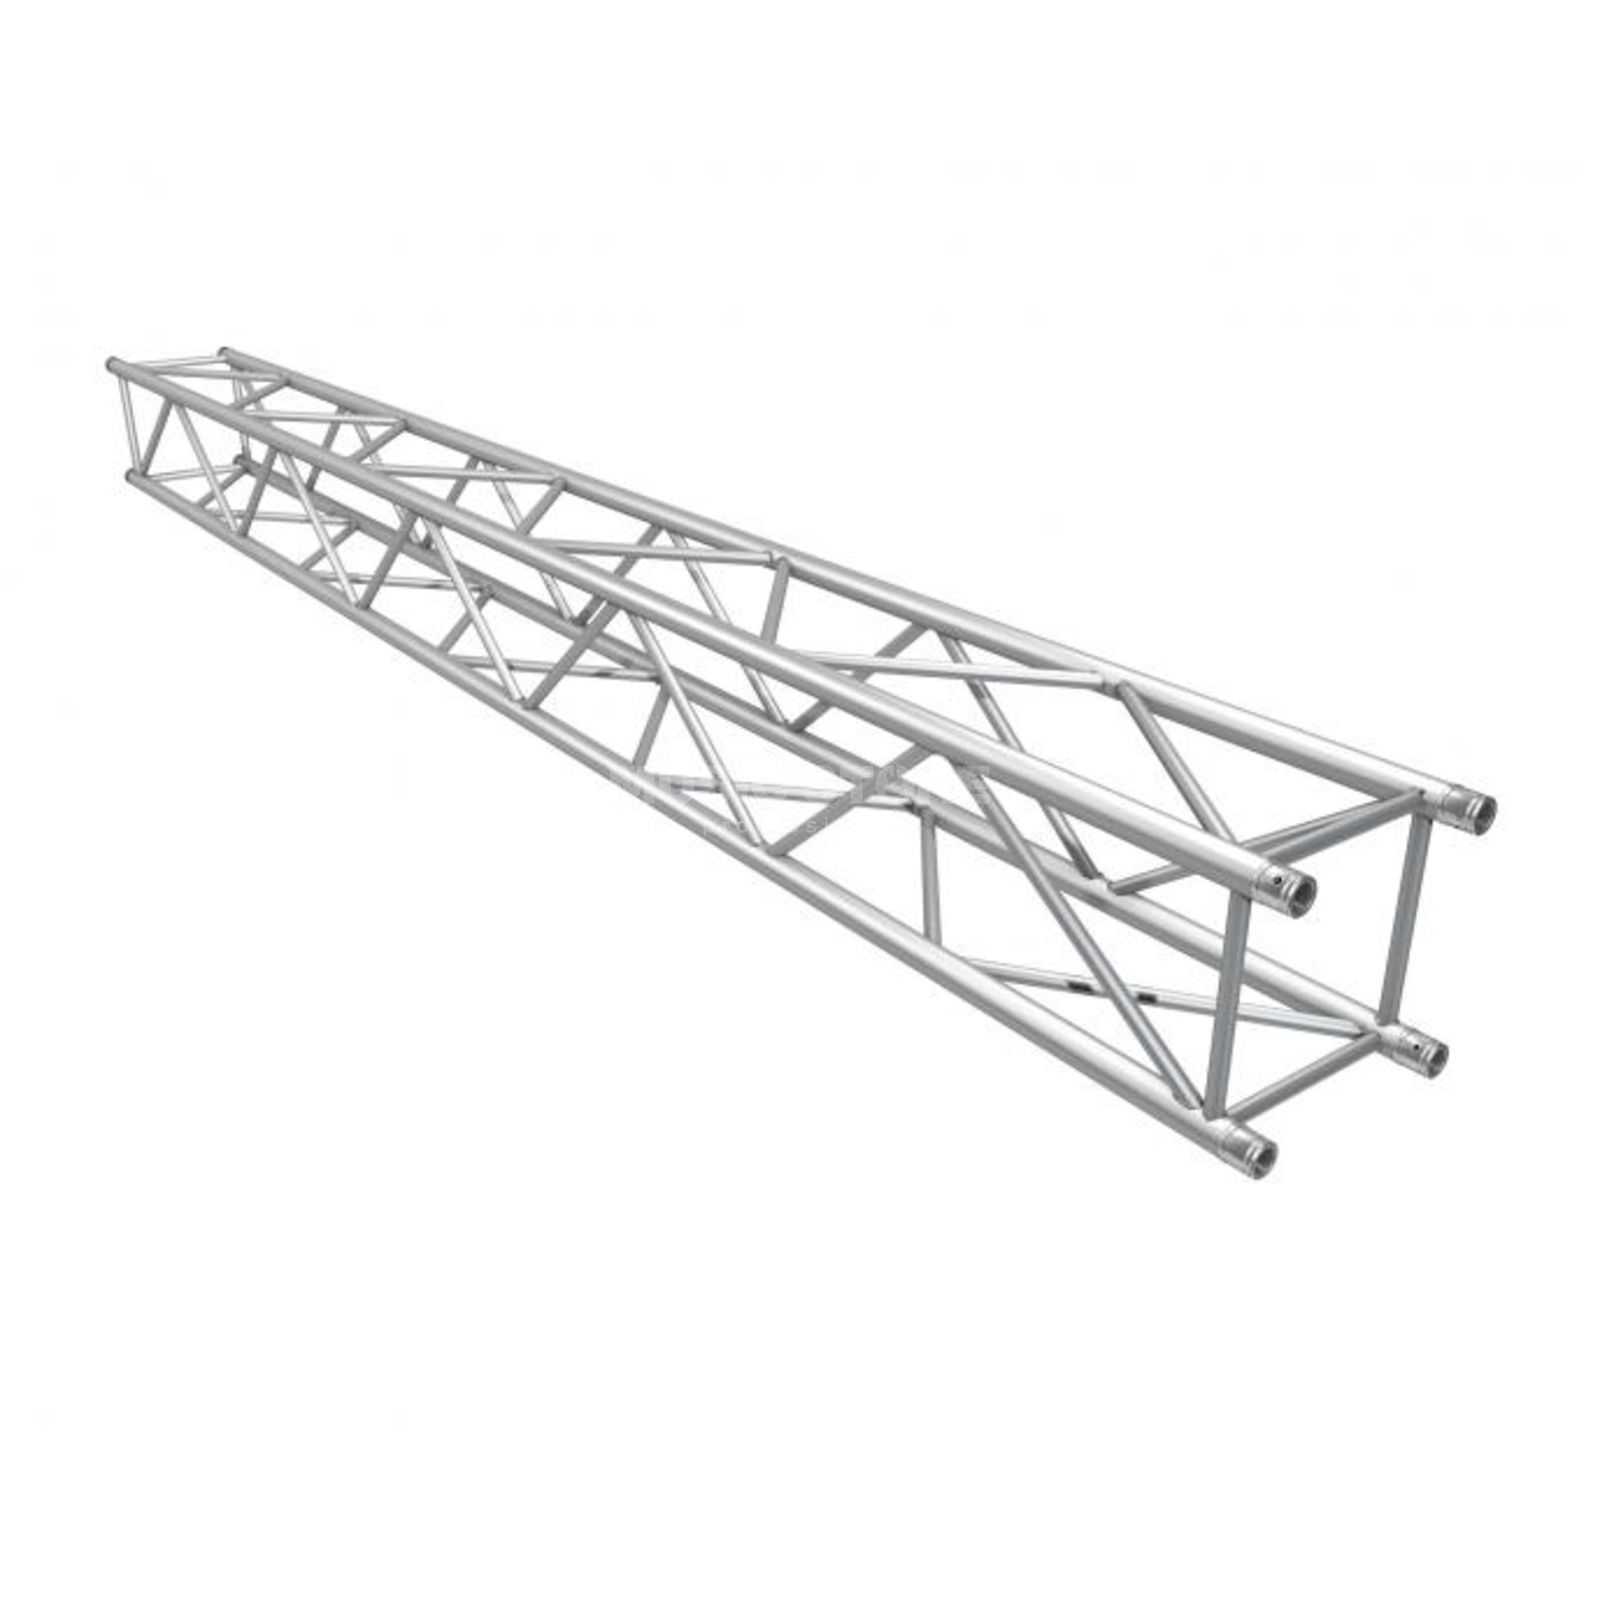 Global Truss F44 450cm incl.  Conical Coupler Product Image